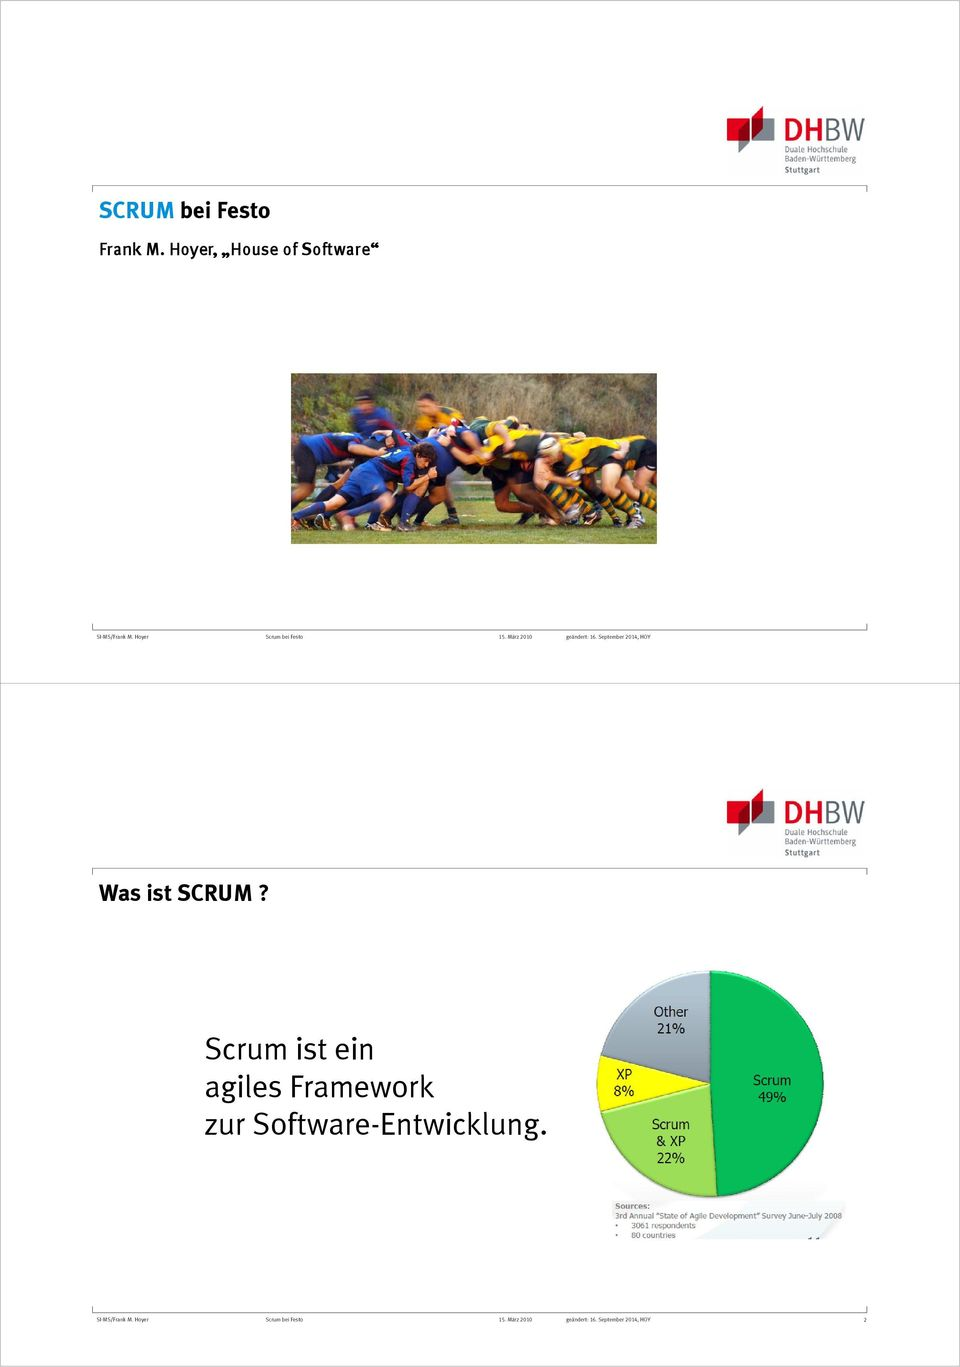 September 2014, HOY Was ist SCRUM?